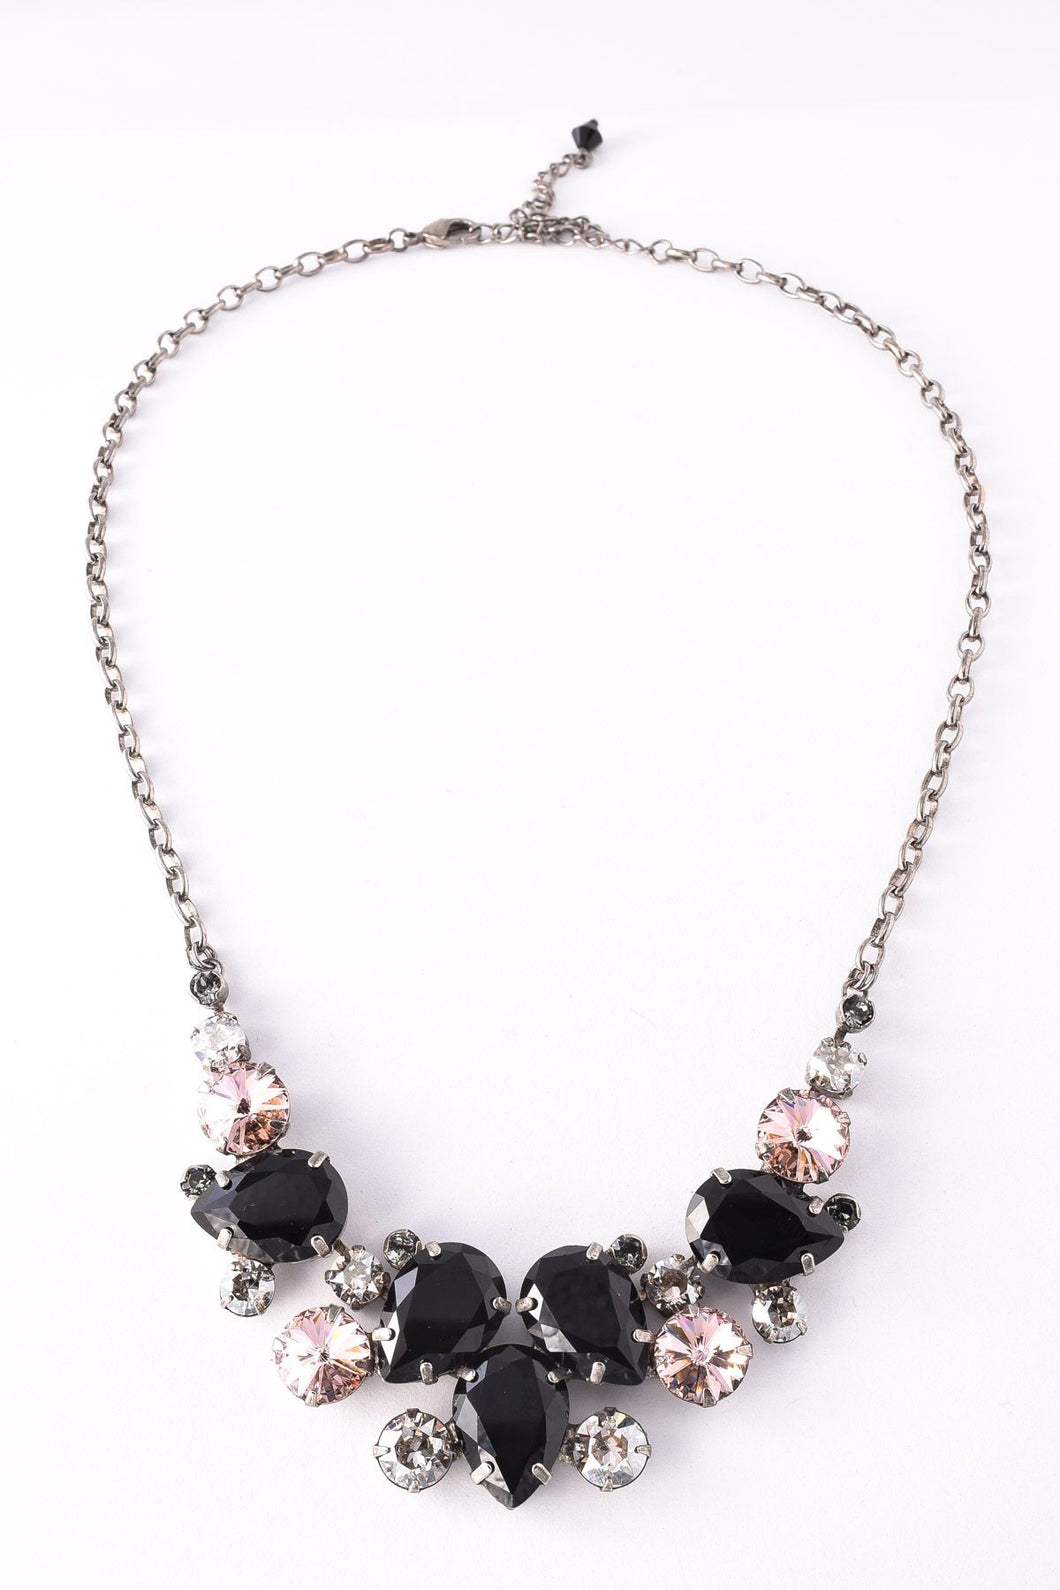 Nested Pear Statement Necklace Black/Antique Silver